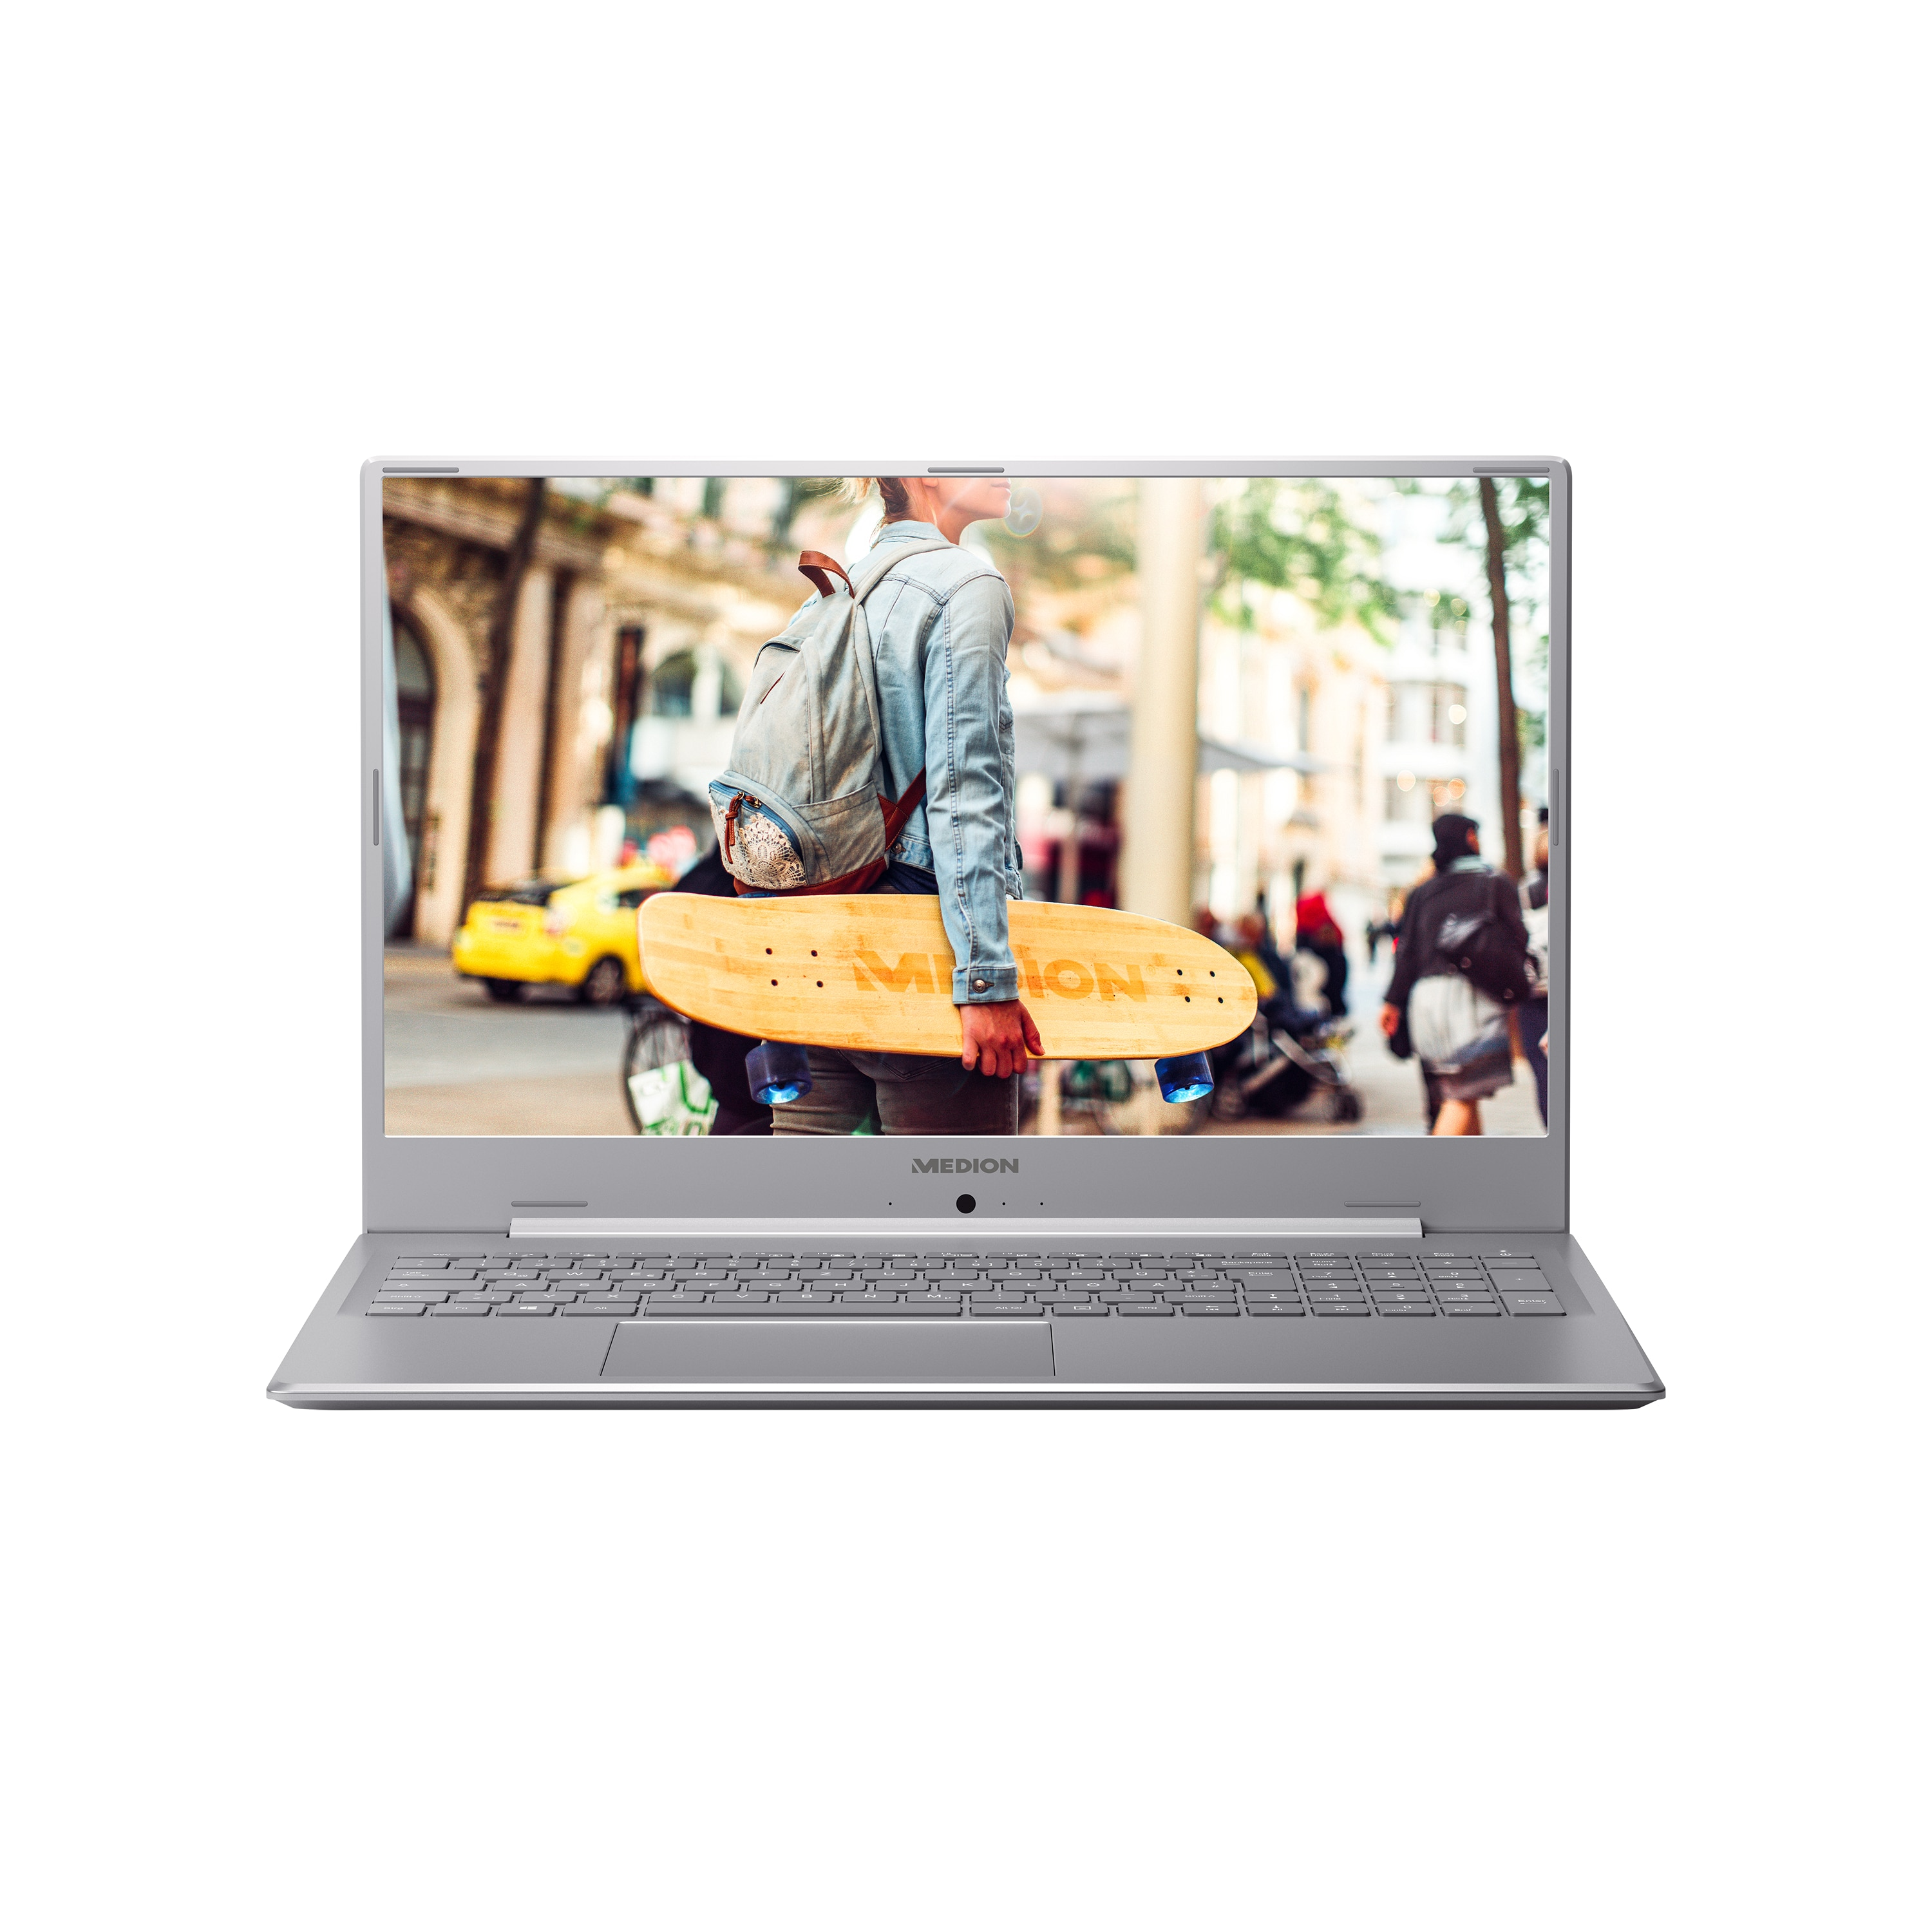 MEDION® AKOYA® E17201, Intel® Pentium® Silver N5000, Windows 10 Home, 43,9 cm (17,3) FHD Display, 1 TB HDD, 8 GB RAM, Schlankes Design, Schnellladefunktion, Notebook